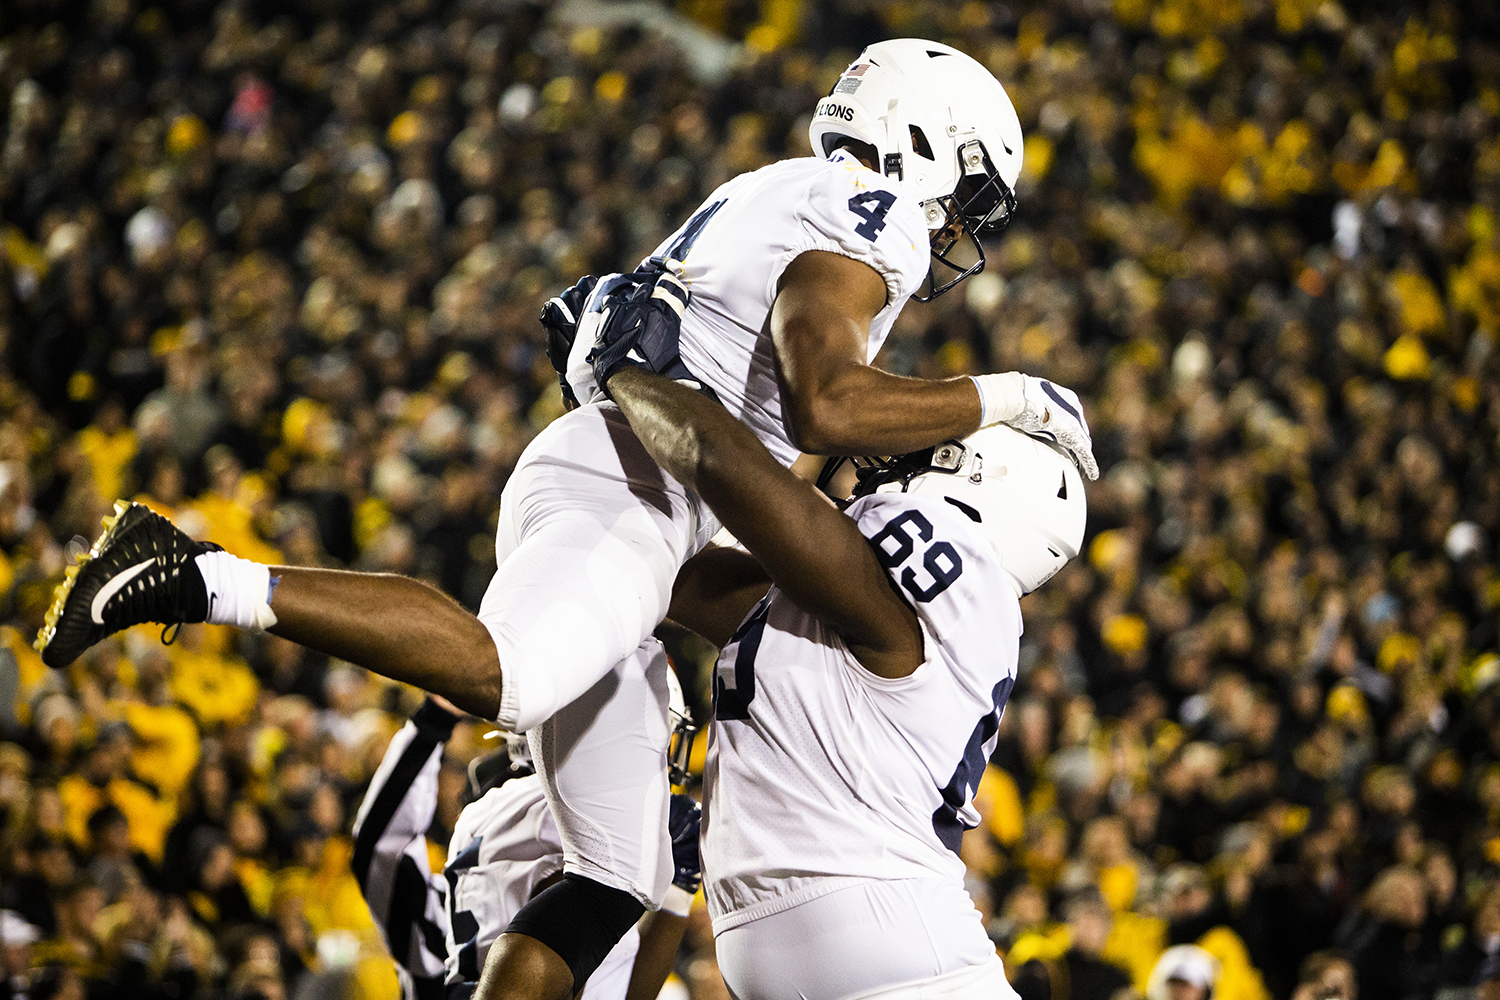 Penn State running back Journey Brown (left) and offensive lineman C.J. Thorpe celebrate a touchdown during the Iowa football game against Penn State in Iowa City on Saturday, Oct. 12, 2019. The Nittany Lions defeated the Hawkeyes 17-12.